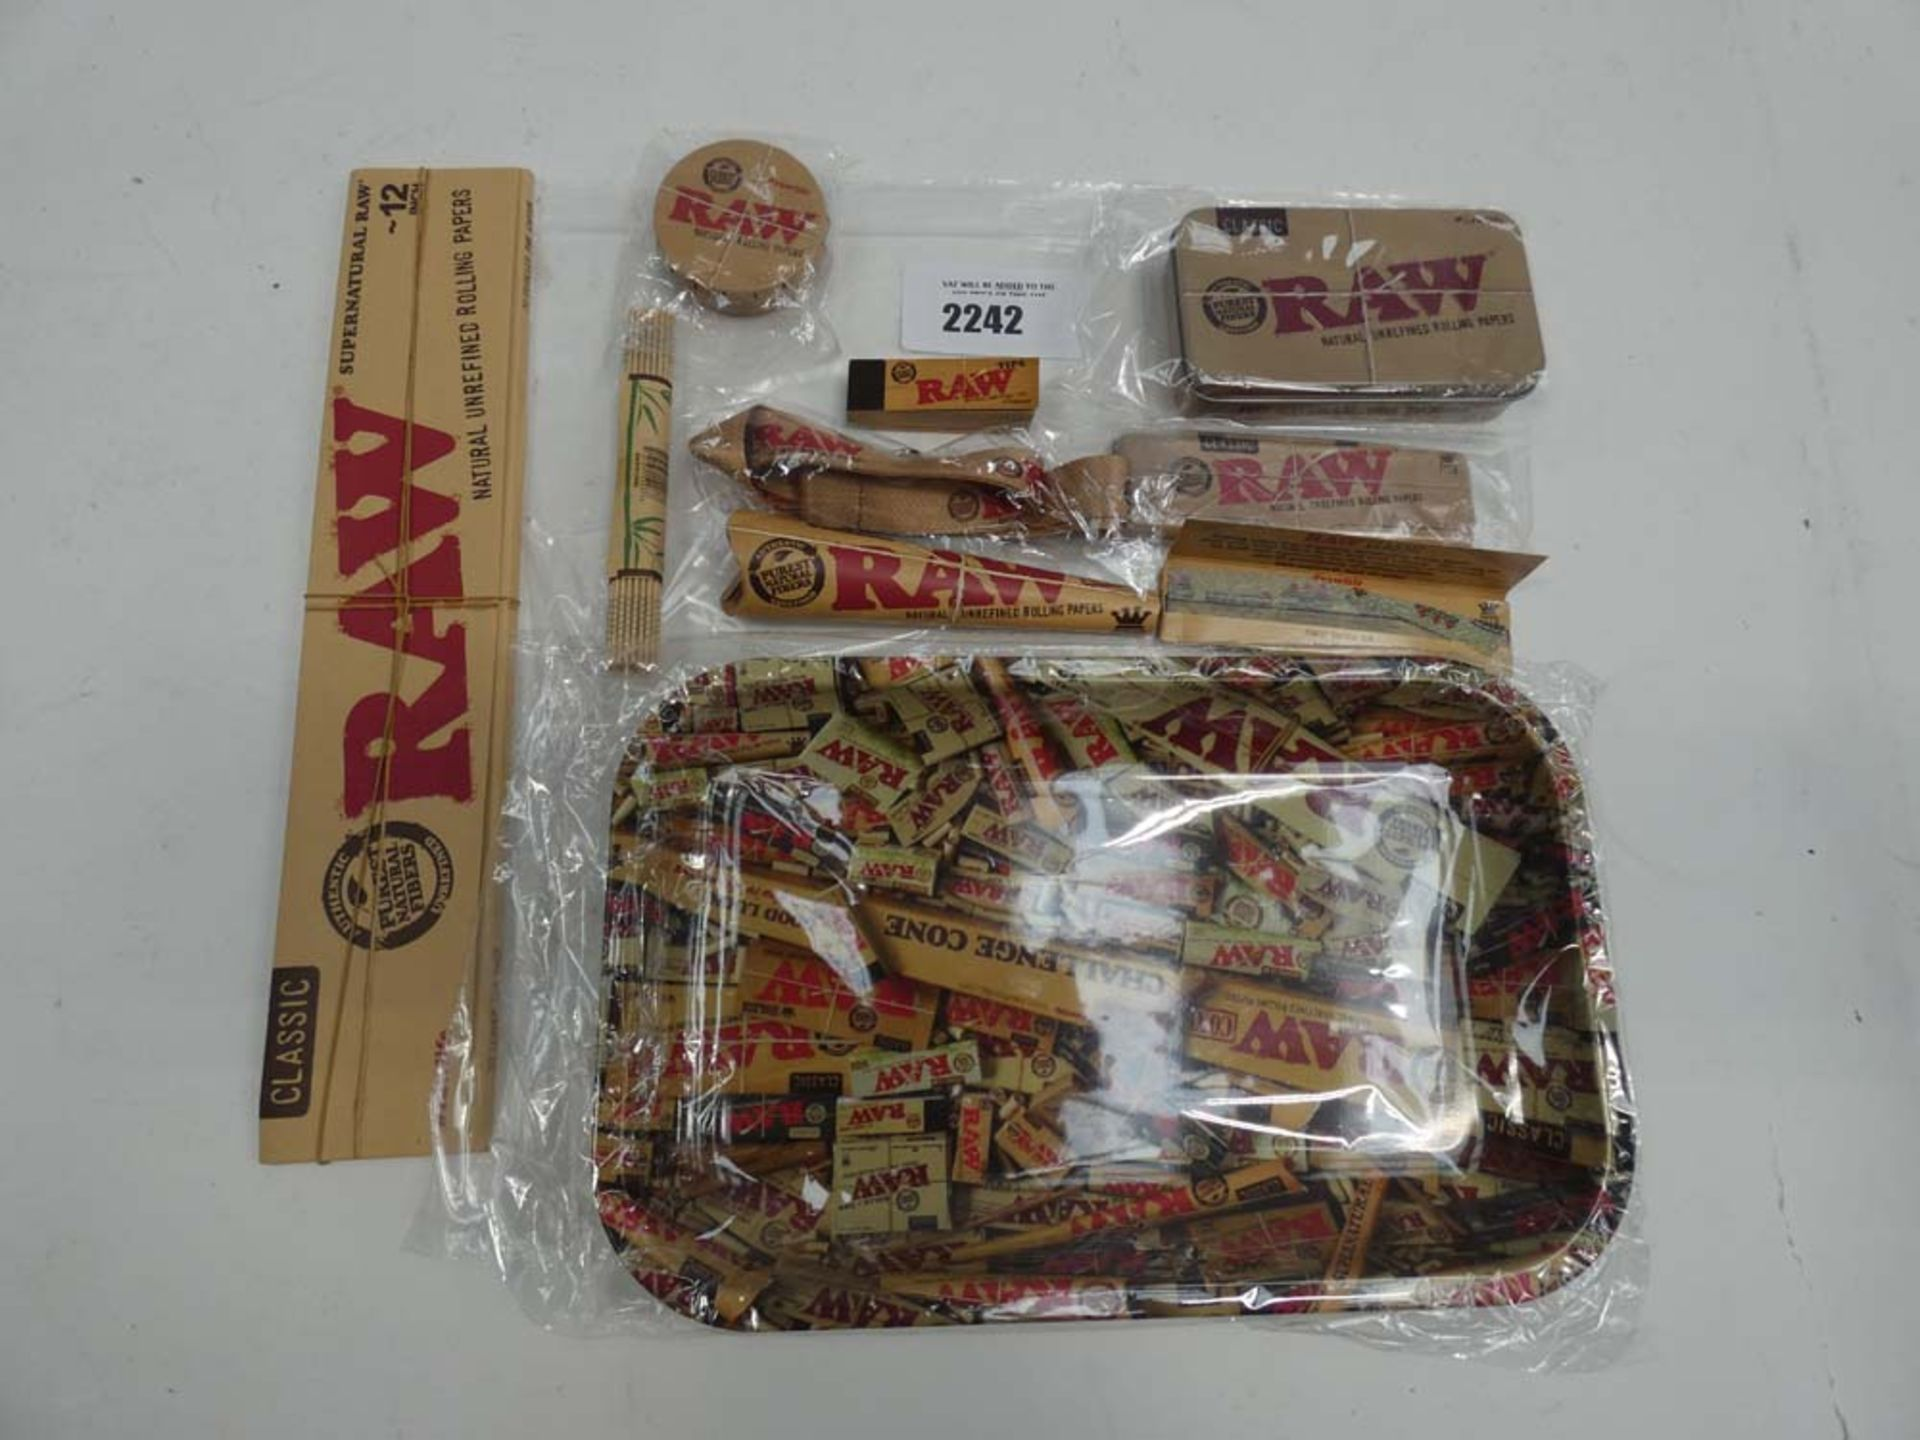 Quantity of RAW smoking accessories; tray, tin, smoking papers and card tips